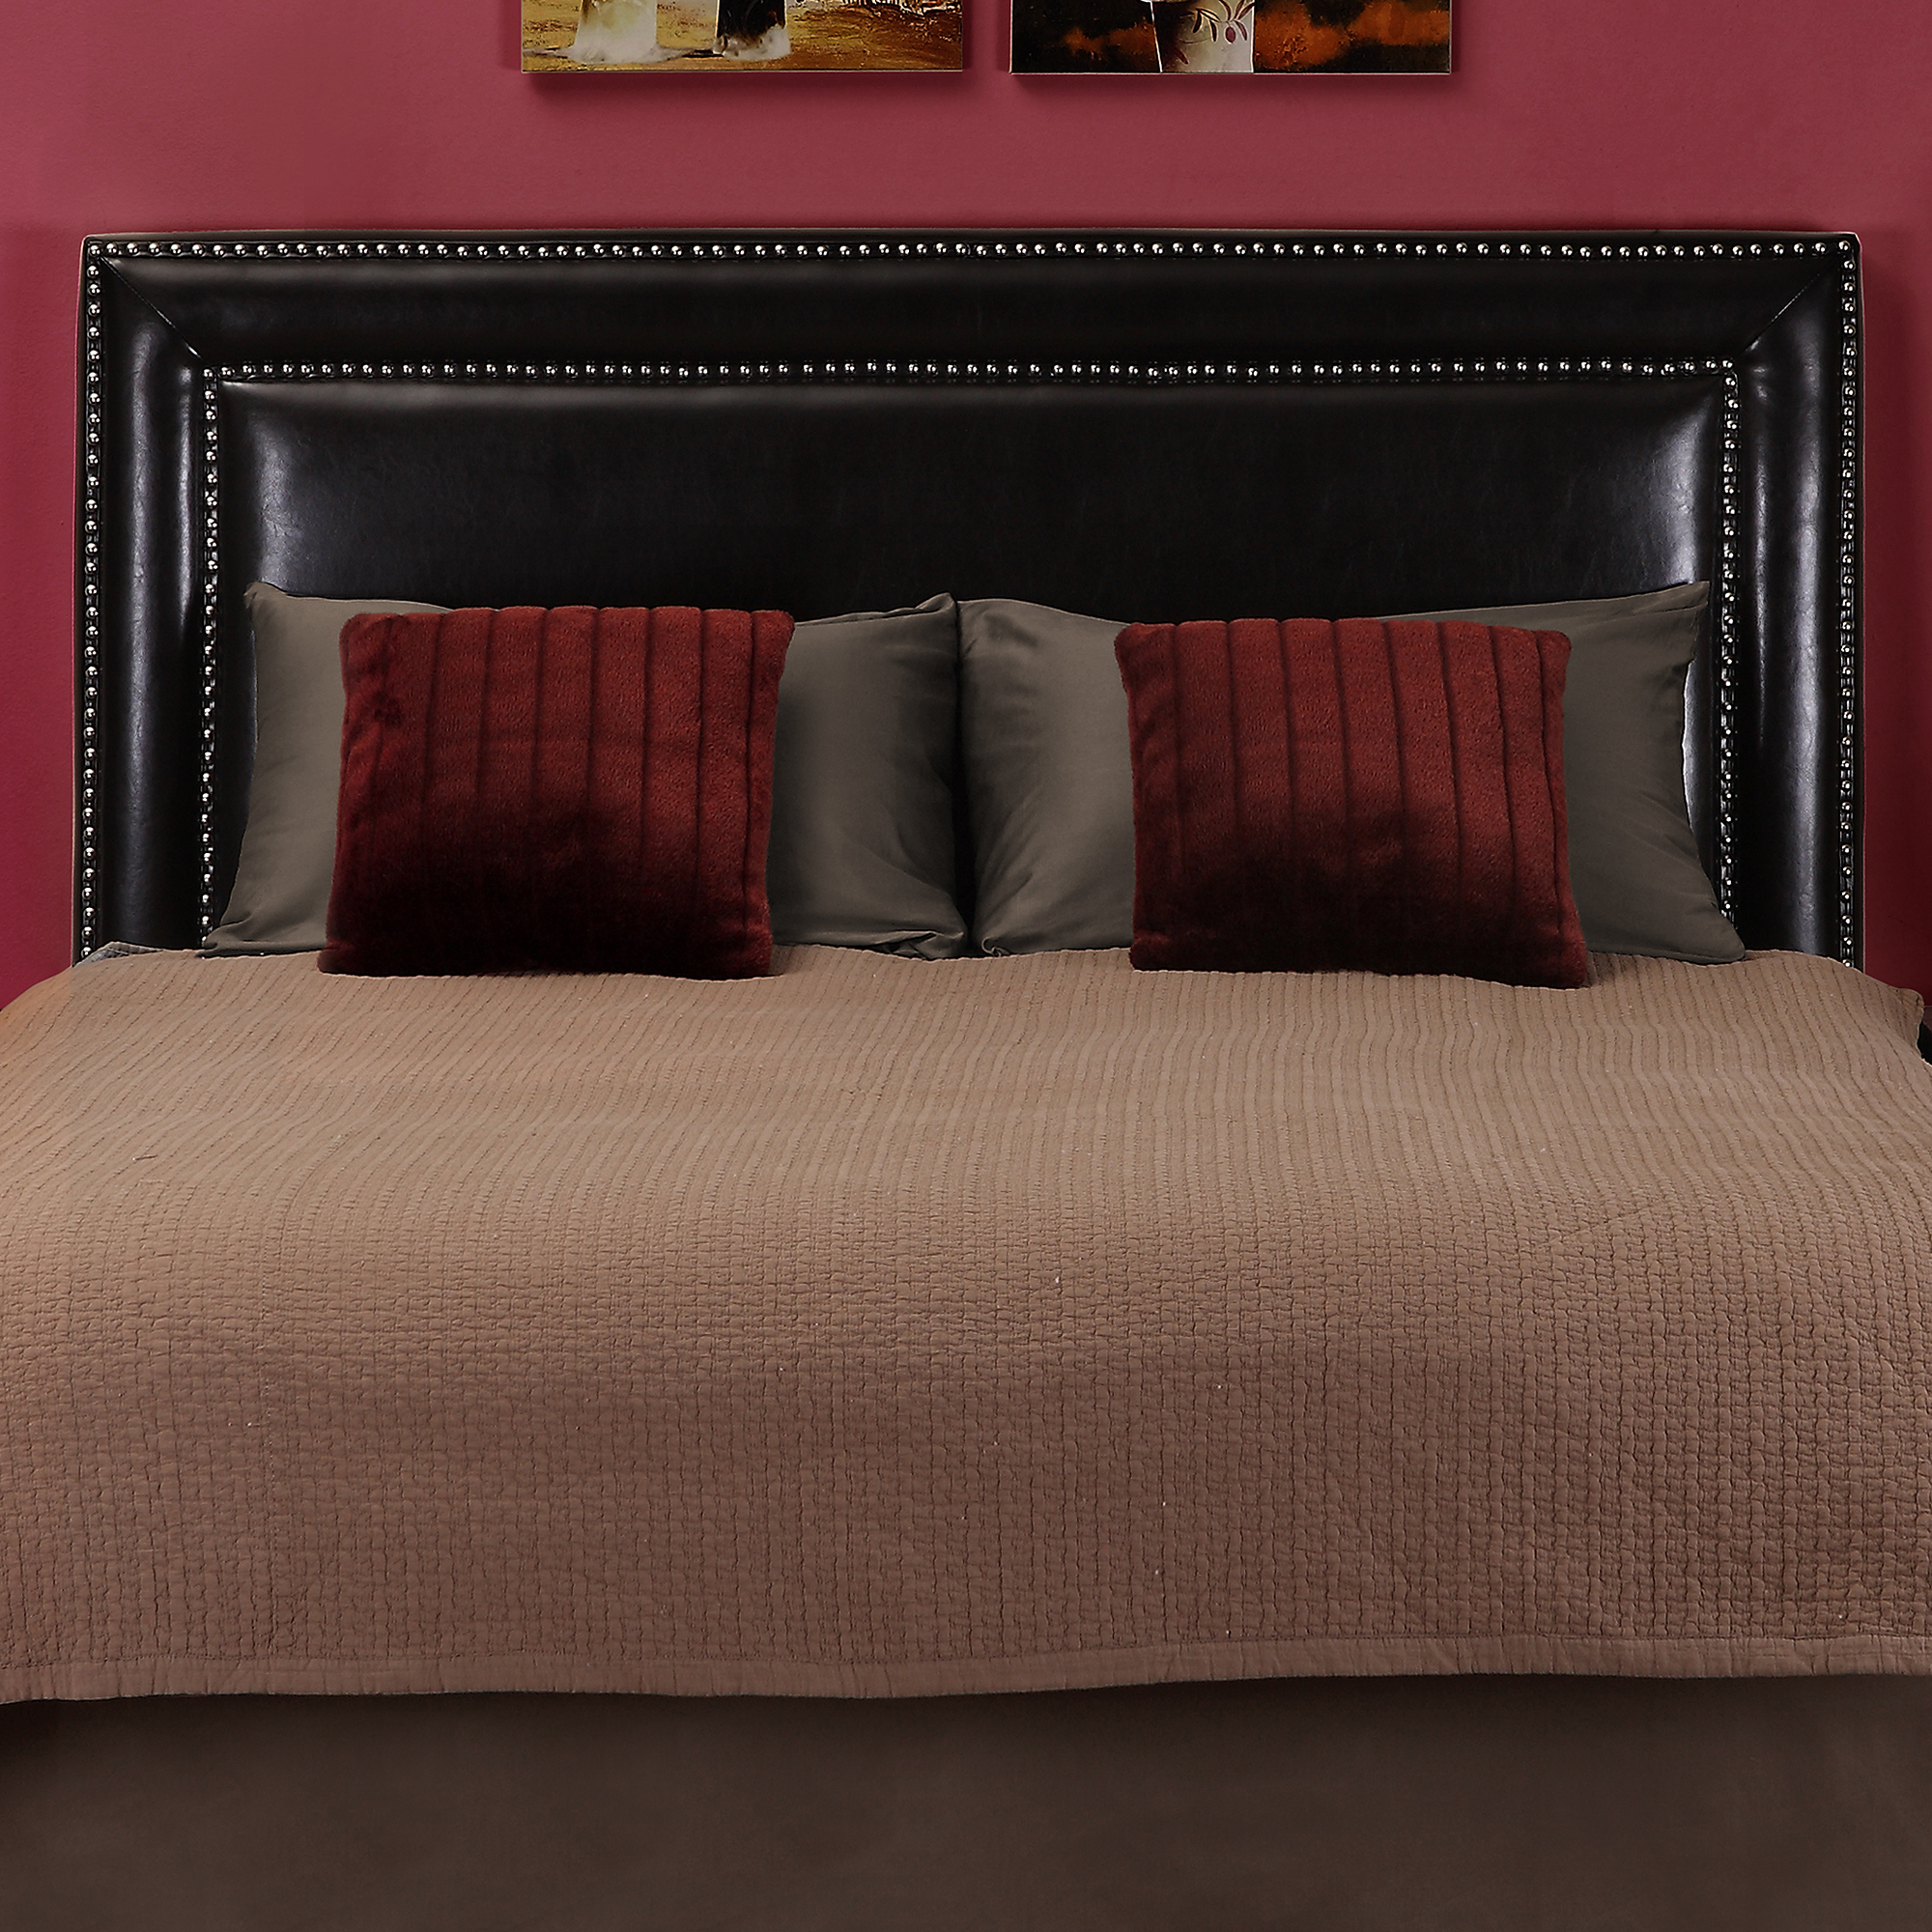 Dorel Living Evanston Faux Leather Full/Queen Headboard with Nailheads, Espresso